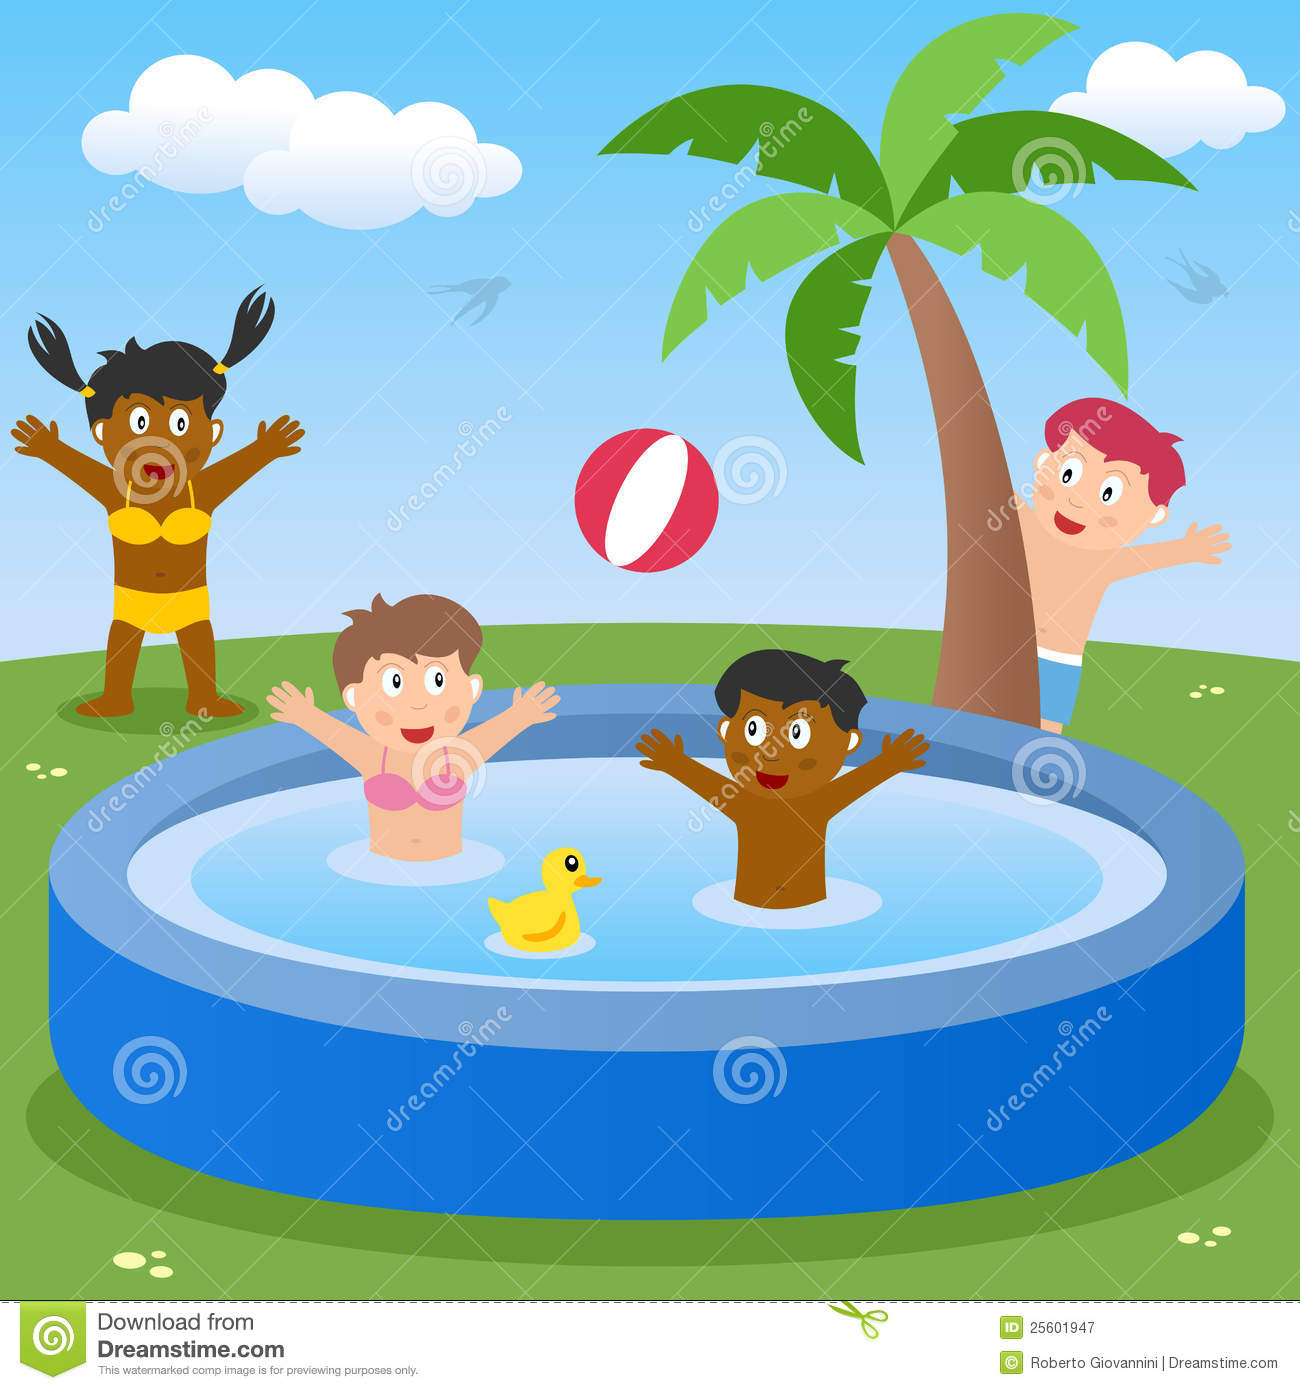 Kids Playing In Paddling Pool Royalty Free Stock